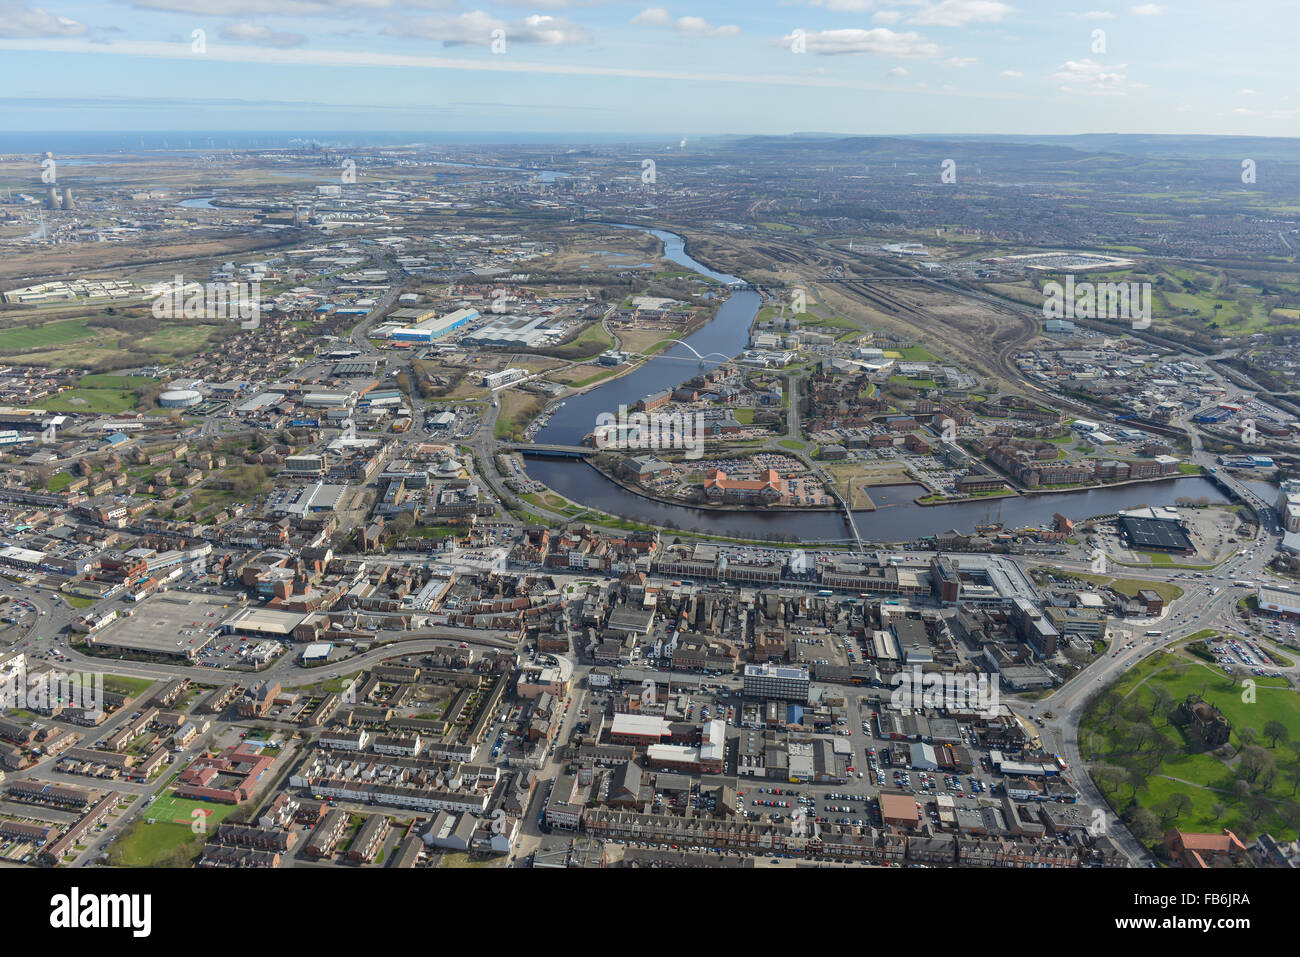 General views of Stockton on Tees from the West - Stock Image